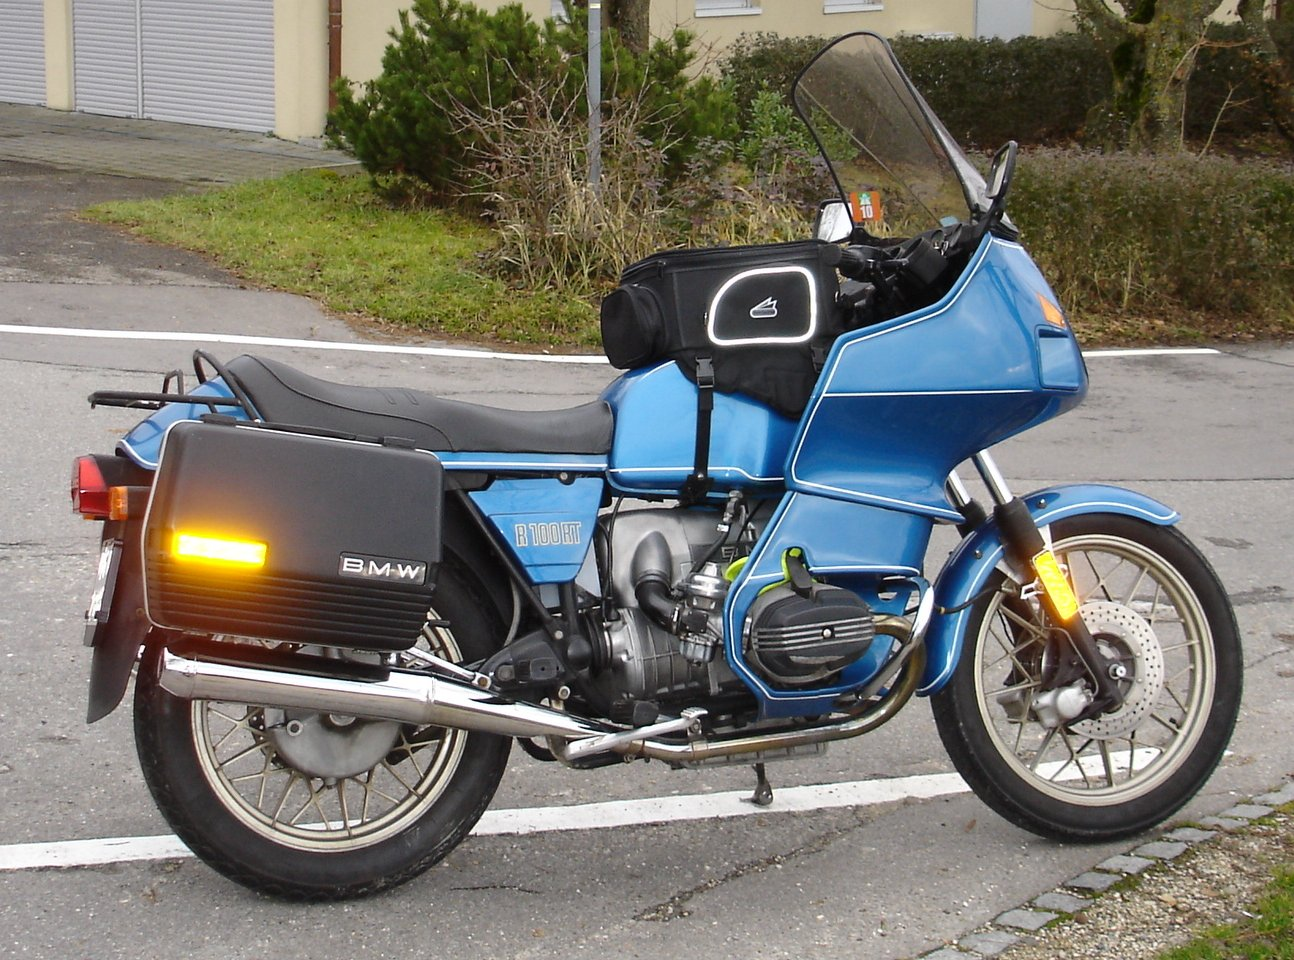 BMW R100CS images #12555